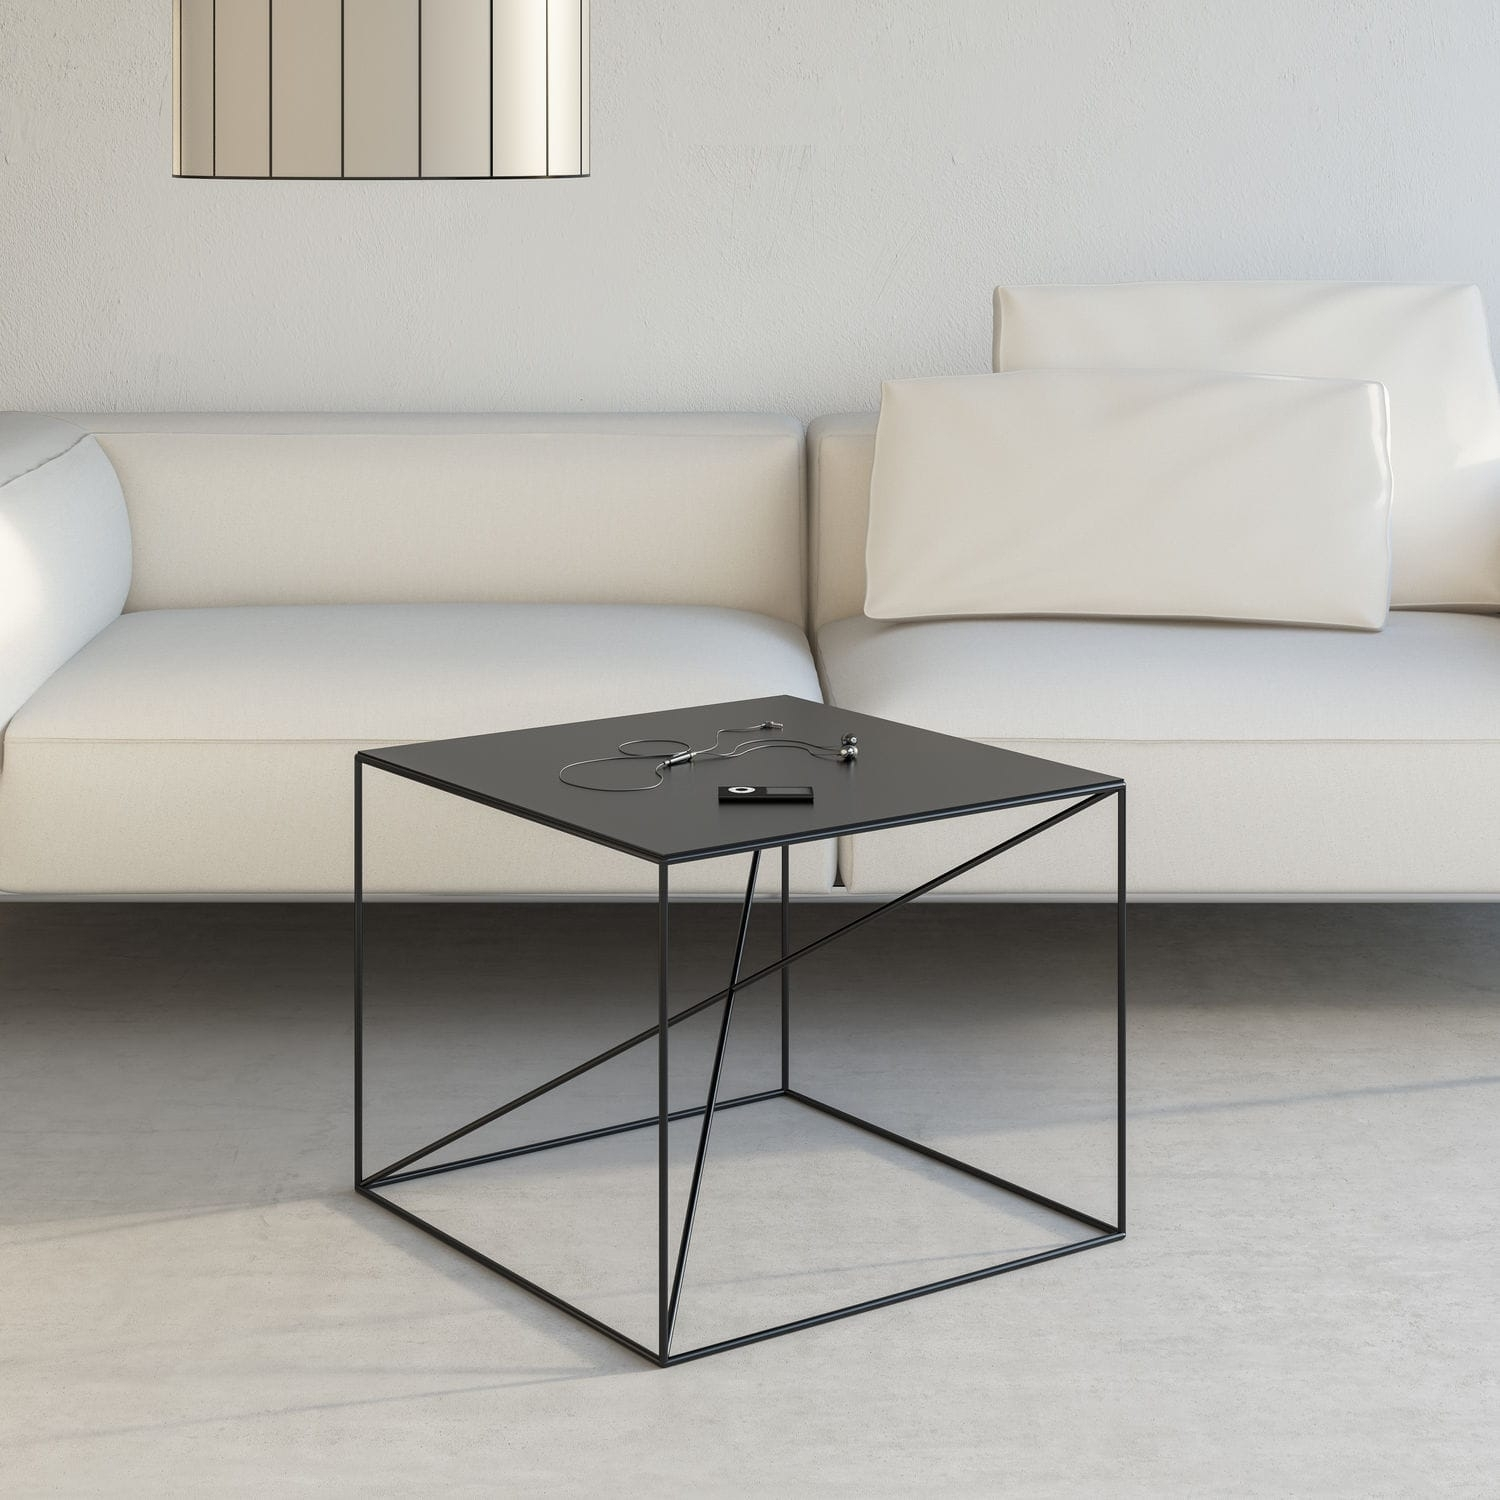 Minimalist Design Coffee Table / Powder-Coated Steel / Rectangular pertaining to Minimalist Coffee Tables (Image 20 of 30)